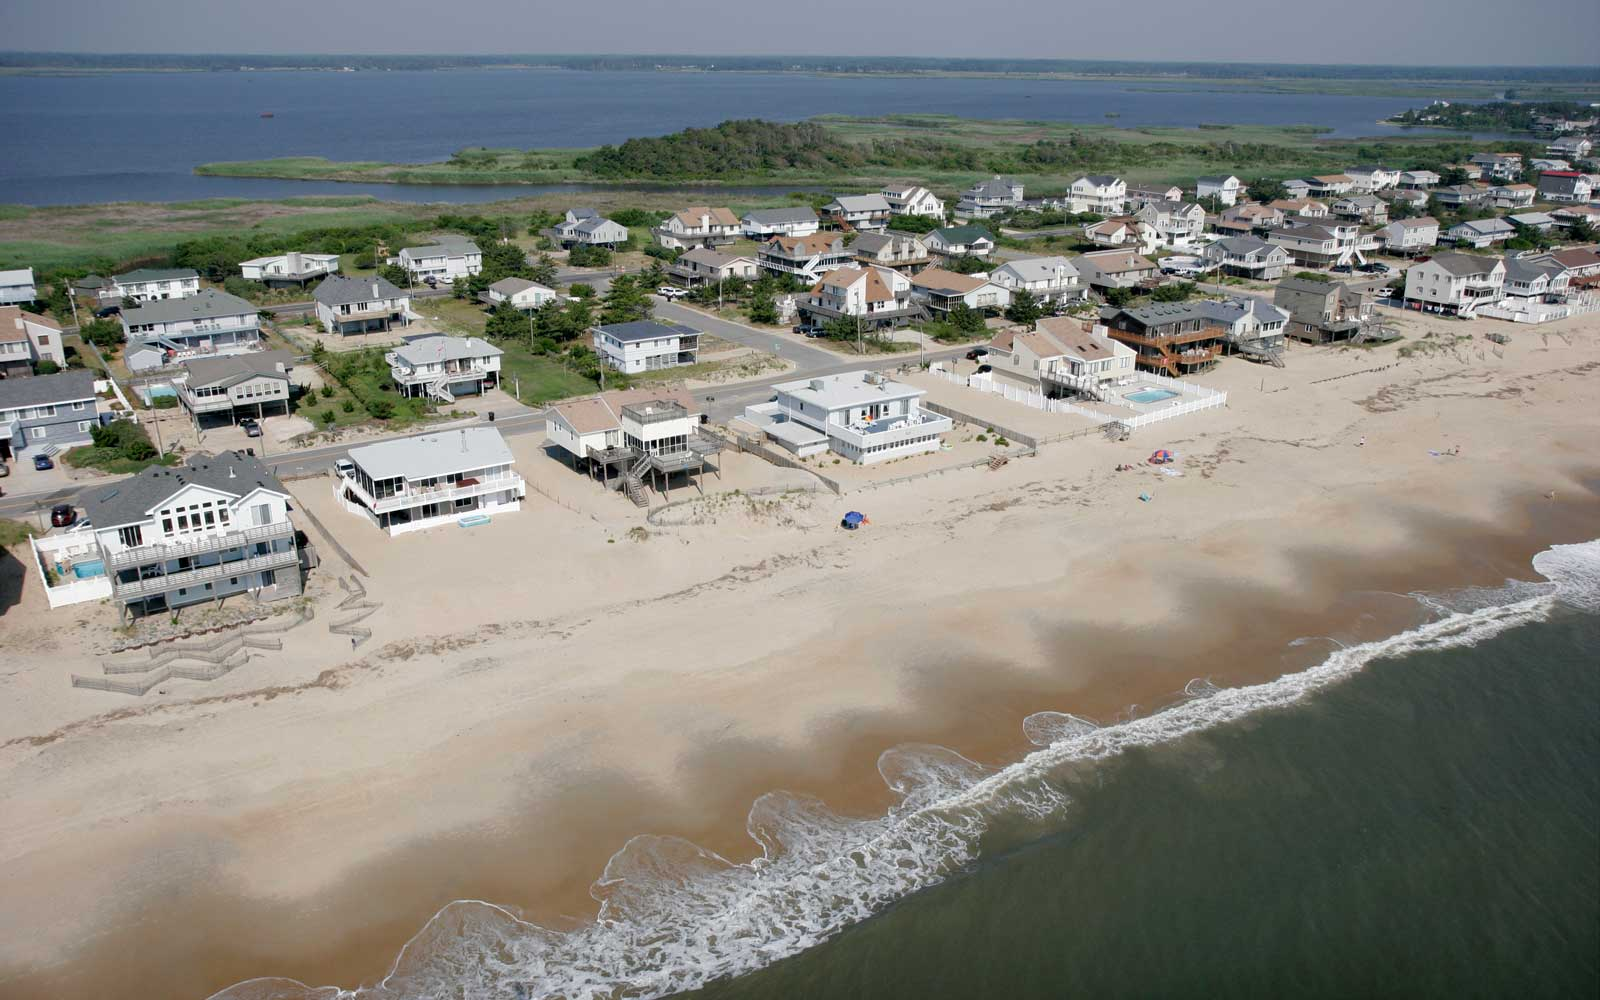 Overhead view of Sandbridge Beach Virginia